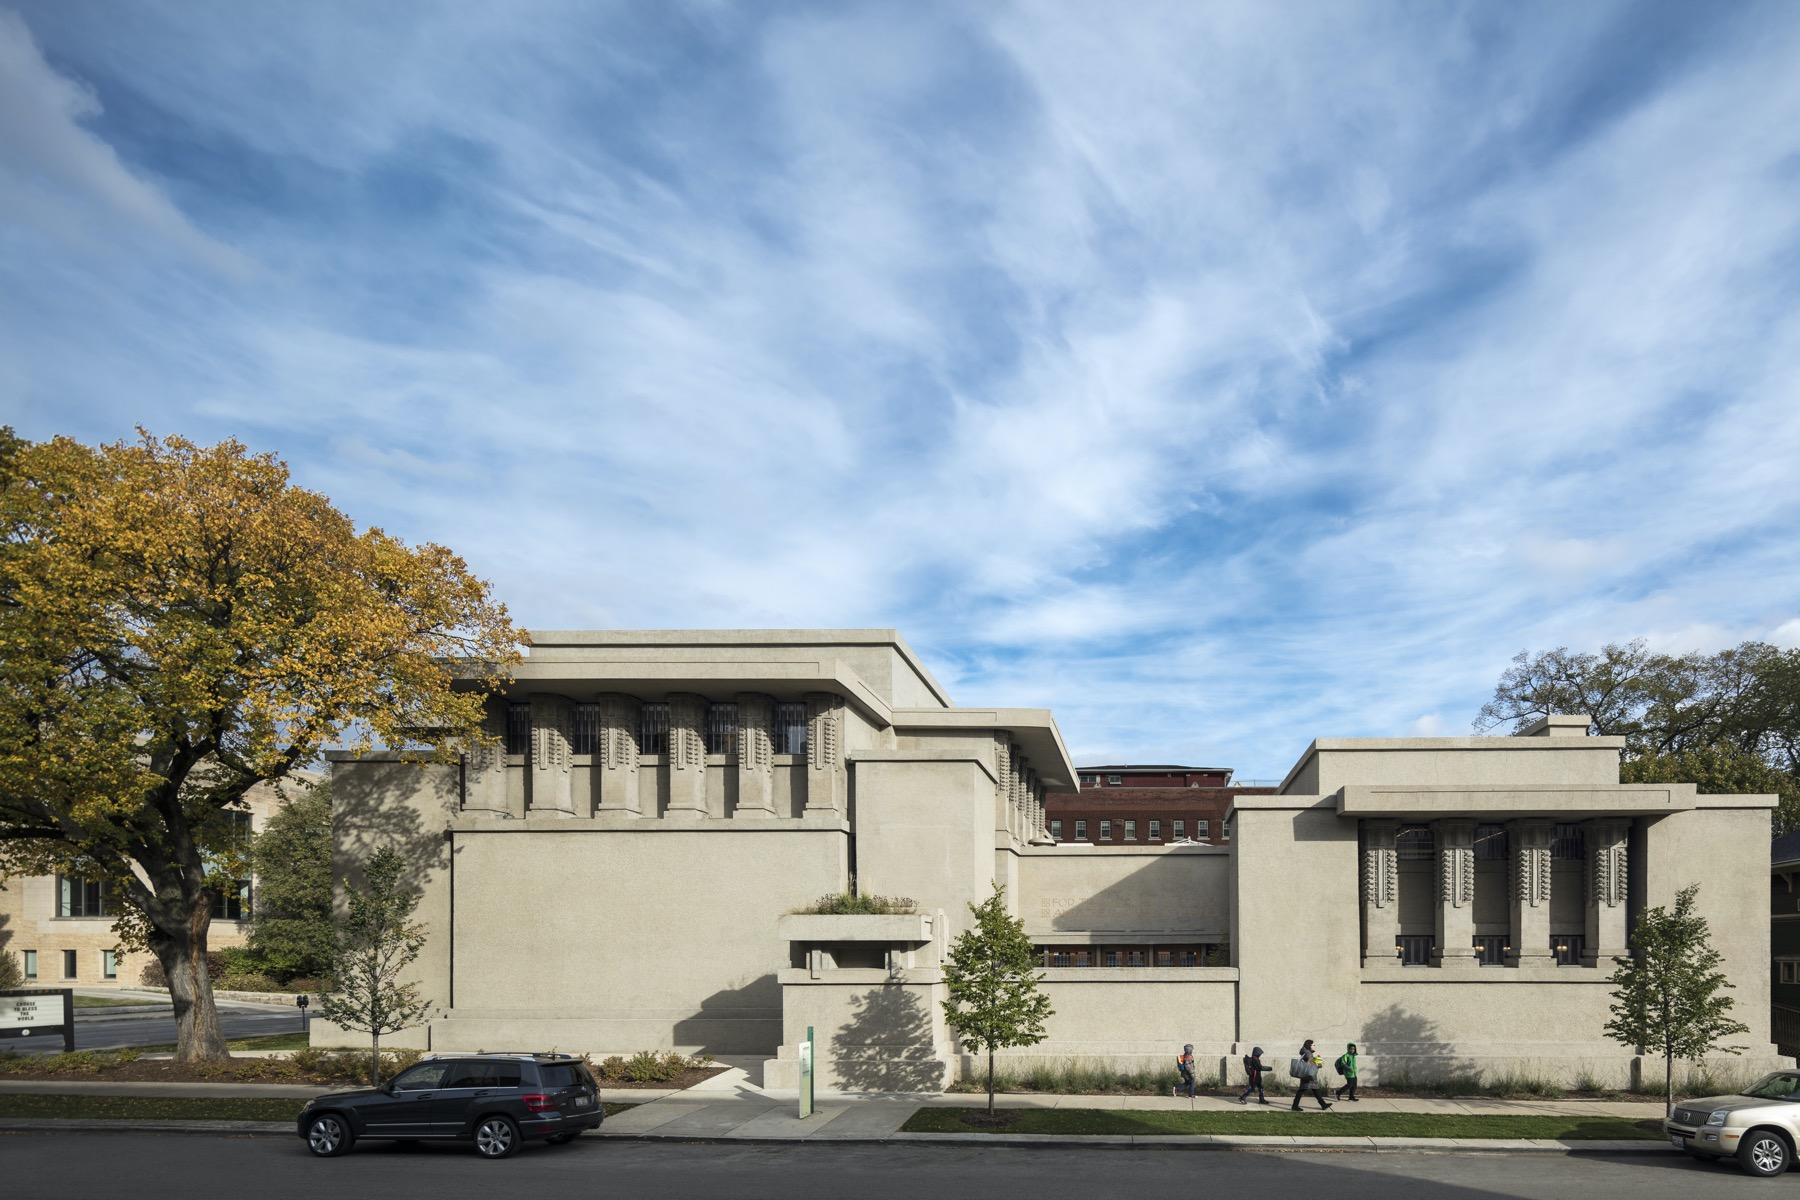 Unity Temple exterior